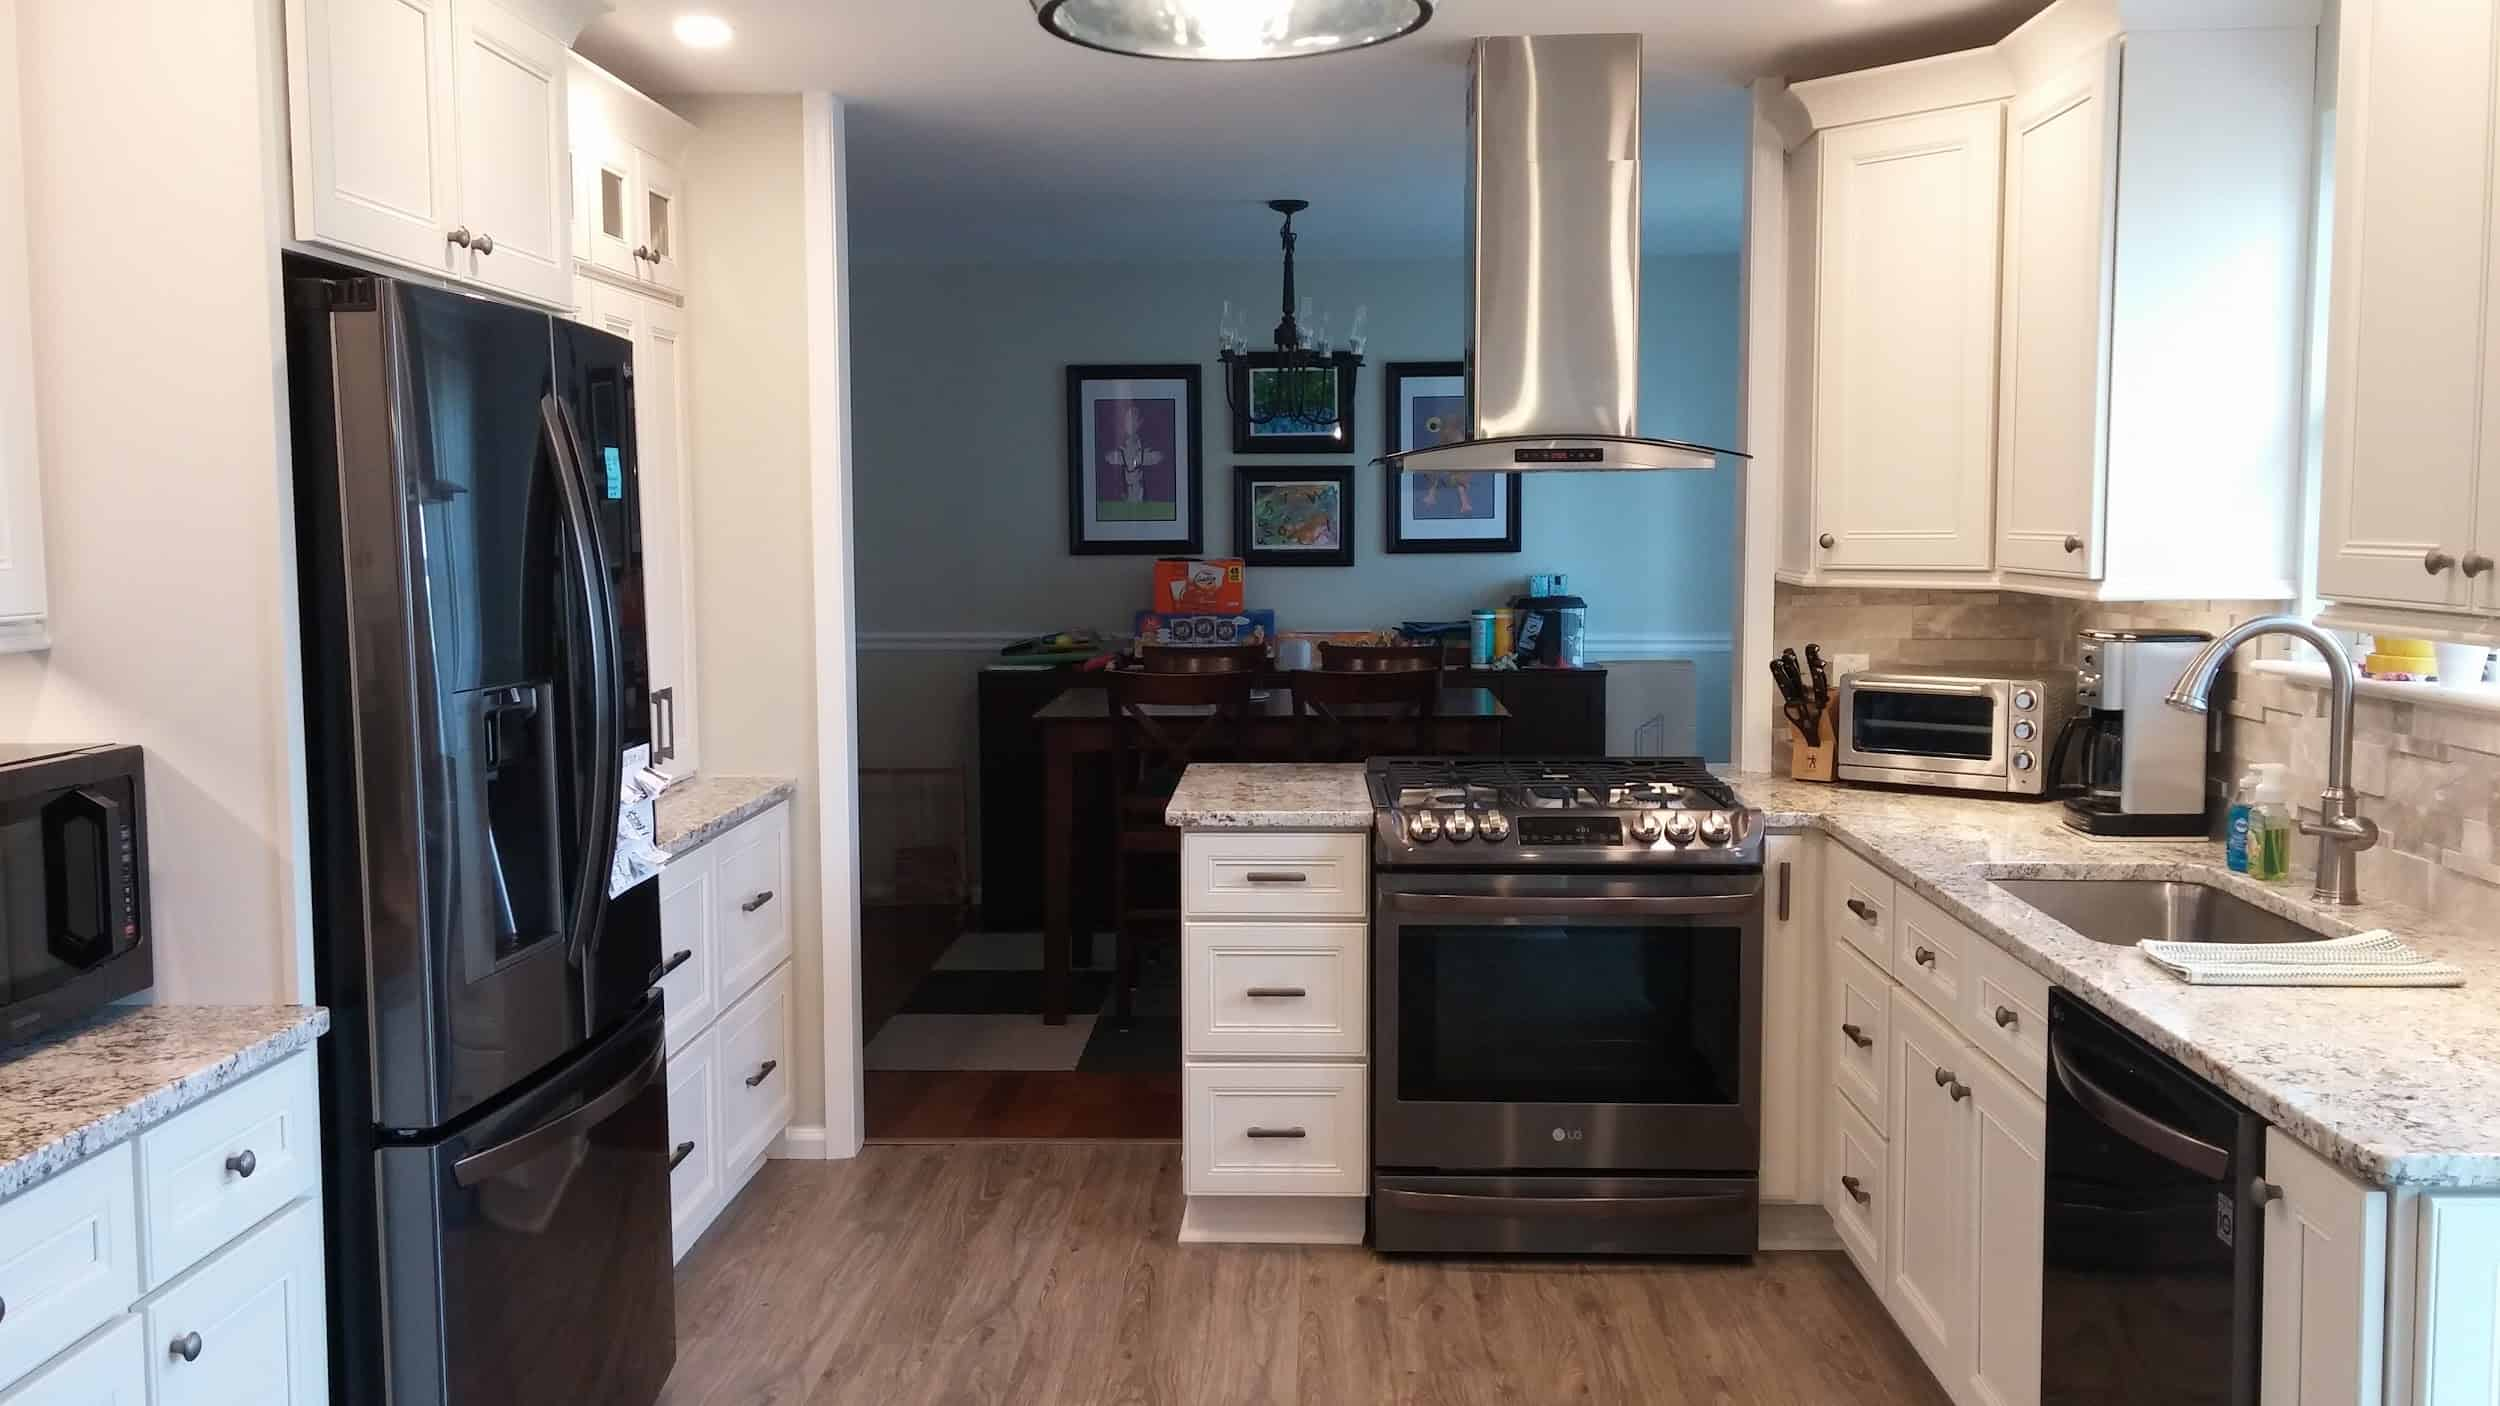 The L-shaped kitchen peninsula with white shaker cabinets and drawers houses the oven stove and dishwasher as well as the kitchen sink paired with gray marble countertops.